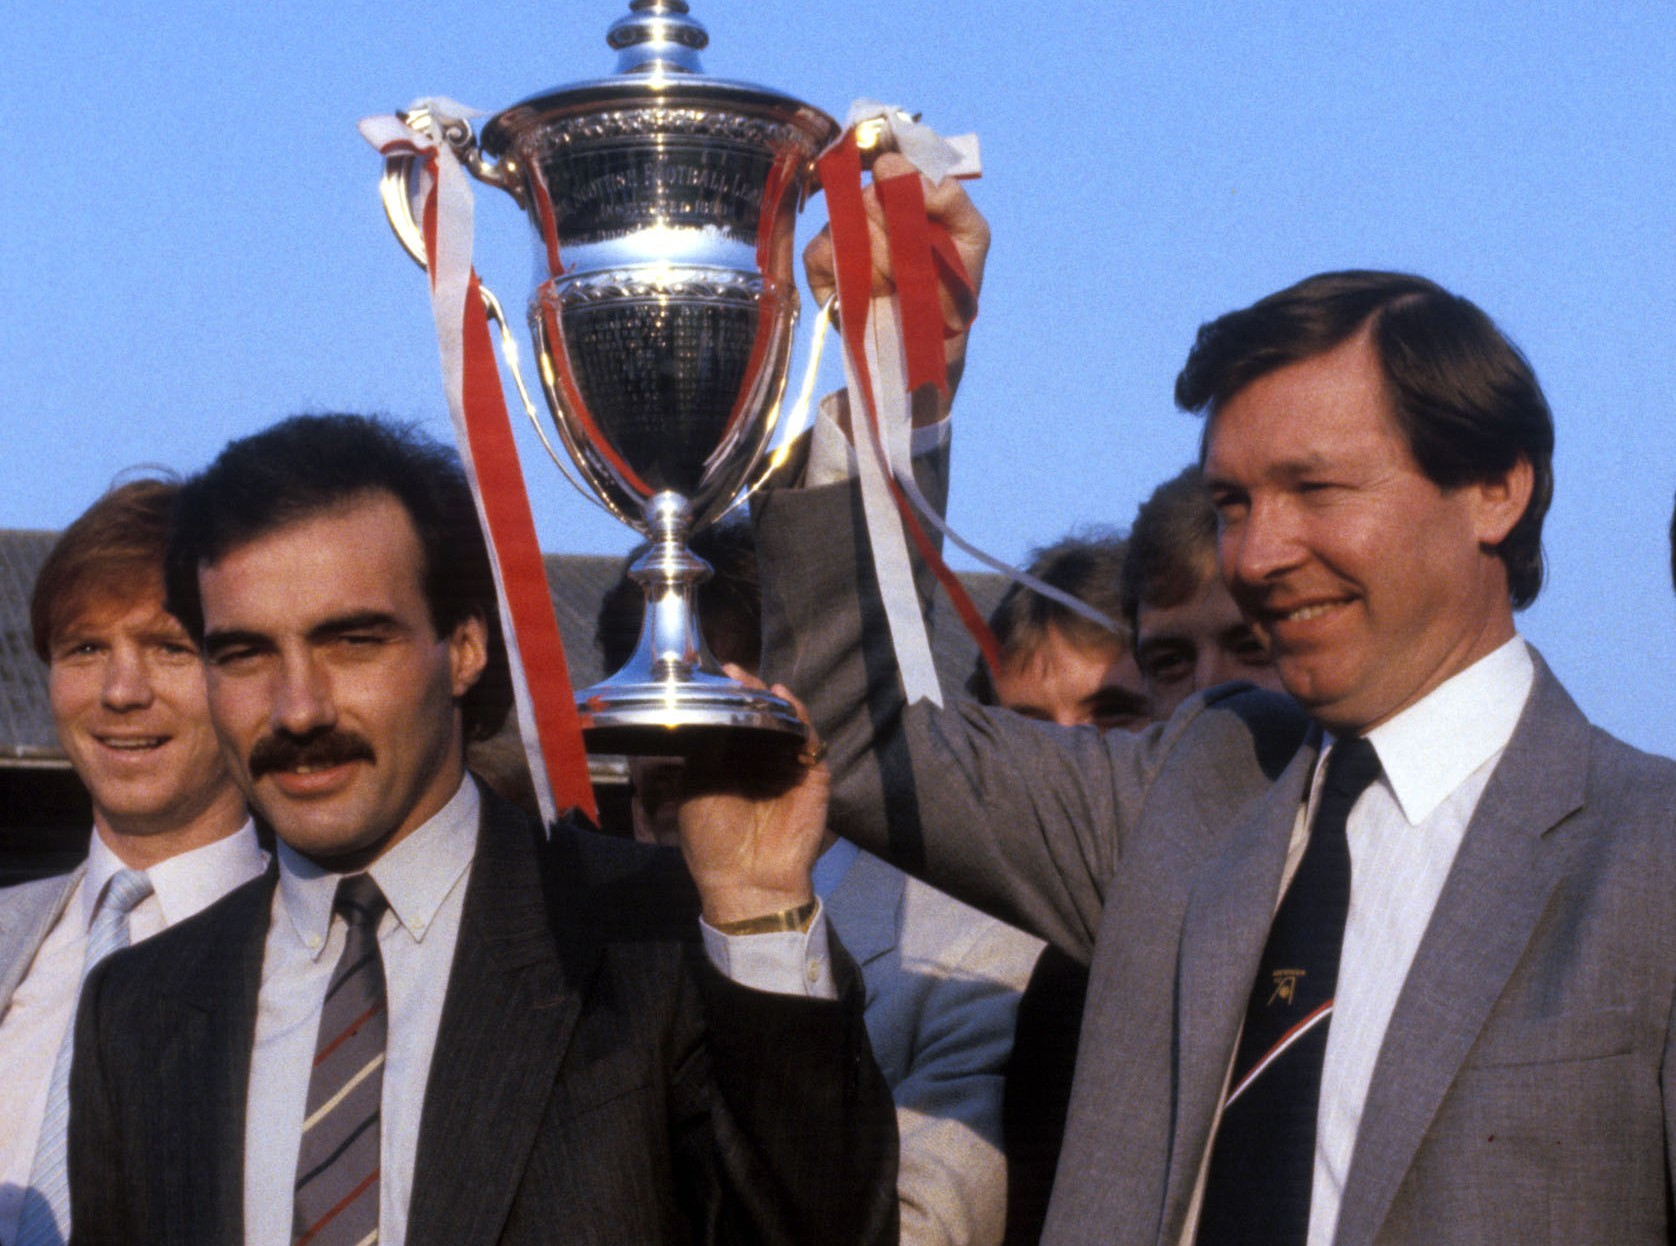 Former Dons skipper Willie Miller, left, and manager Alex Ferguson with the league trophy in 1985. Frank McDougall says Derek McInnes must instill the Fergie mentality in his players.